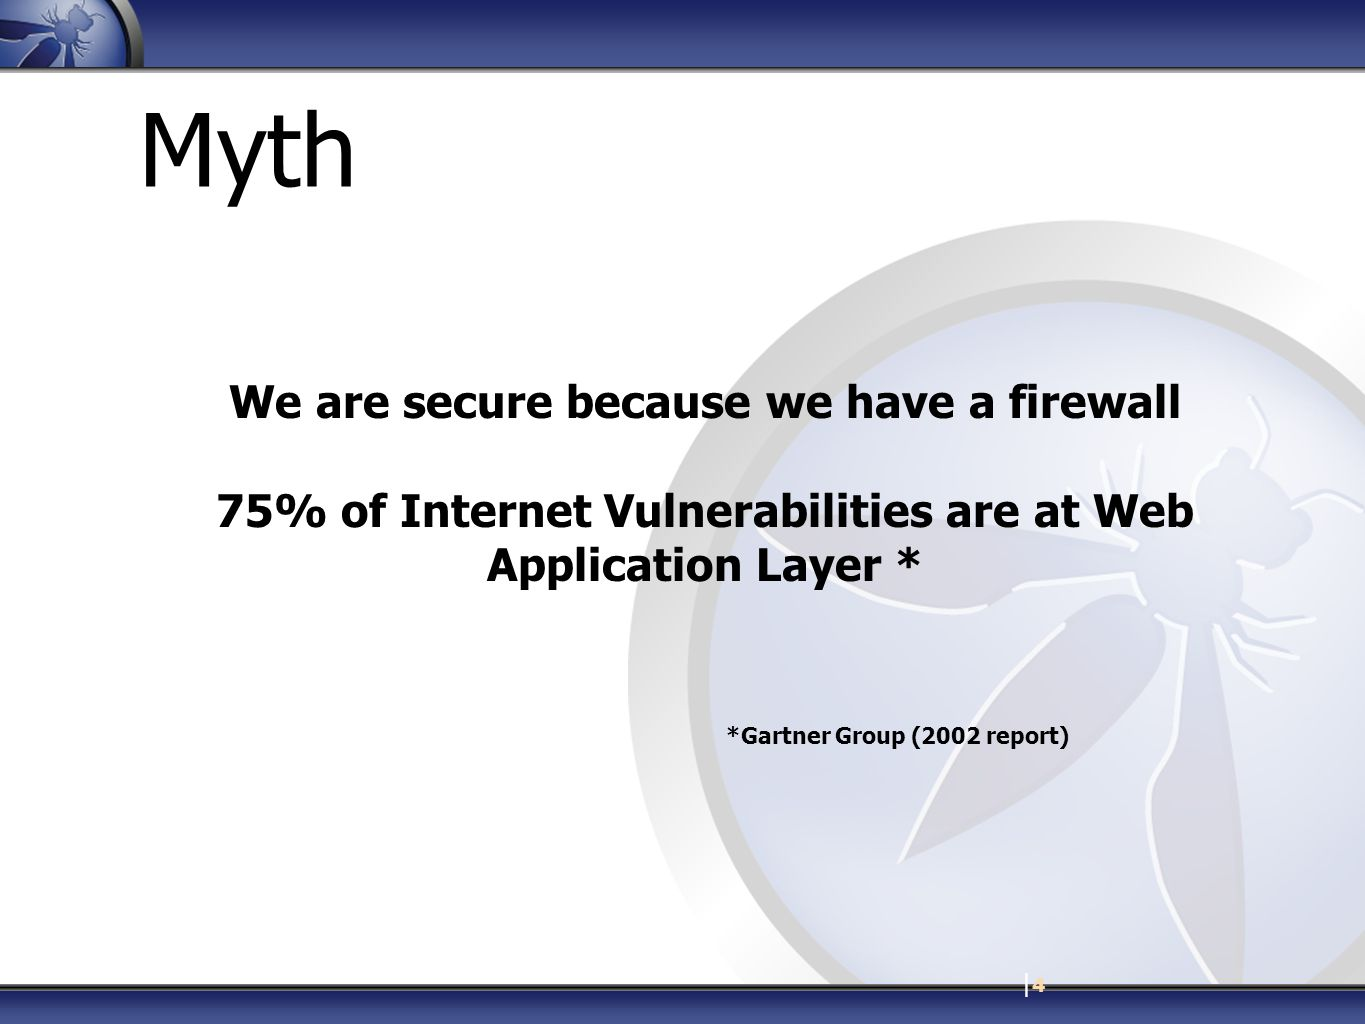 |4|4 Myth We are secure because we have a firewall 75% of Internet Vulnerabilities are at Web Application Layer * *Gartner Group (2002 report)